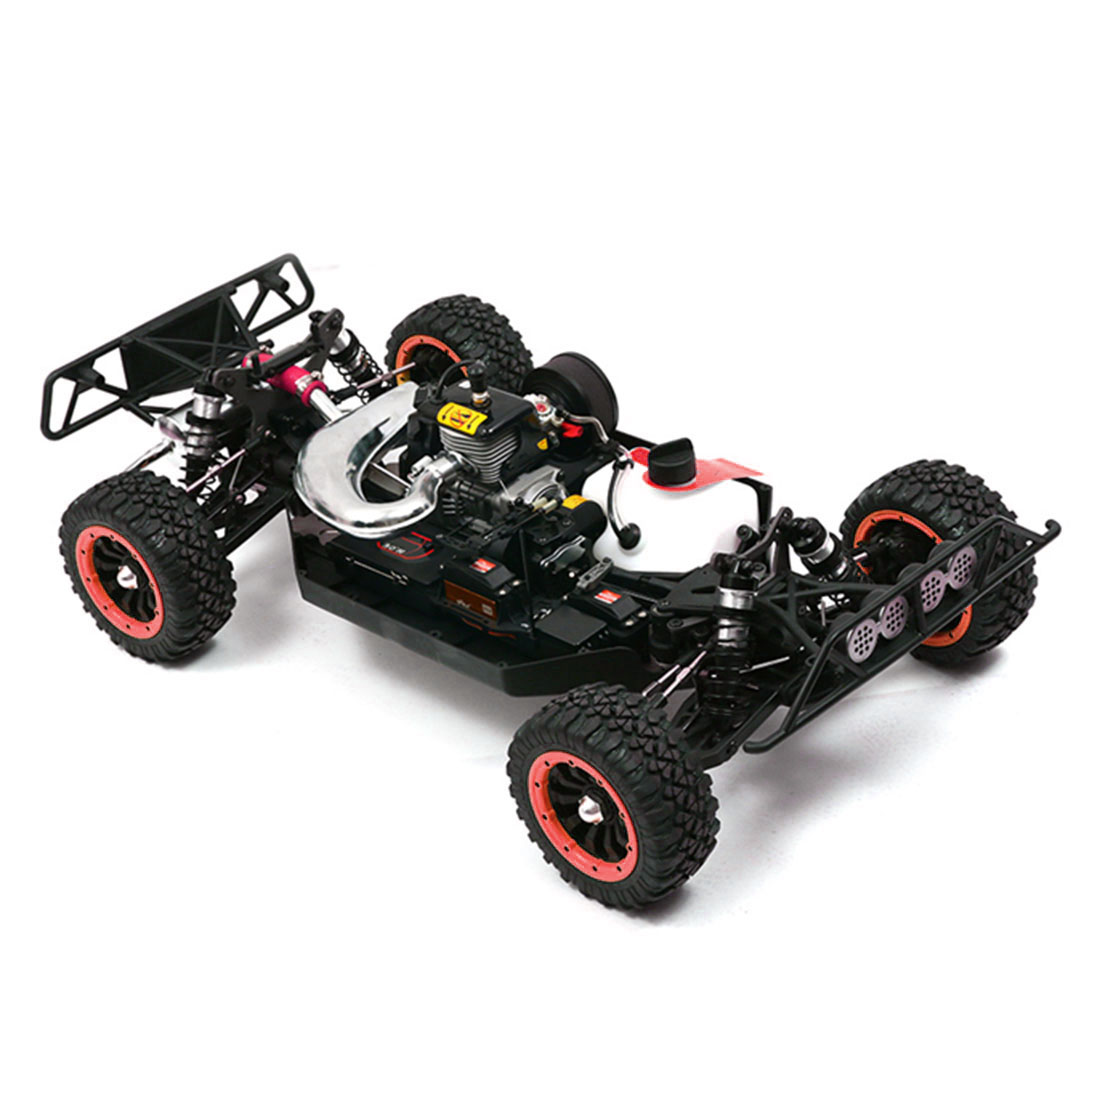 High Quliaty 1:5 Scale 2.4G 4WD High Speed RC Gasoline Short Course Truck Off-Road Vehicle Best Gift Toys Games- Blue